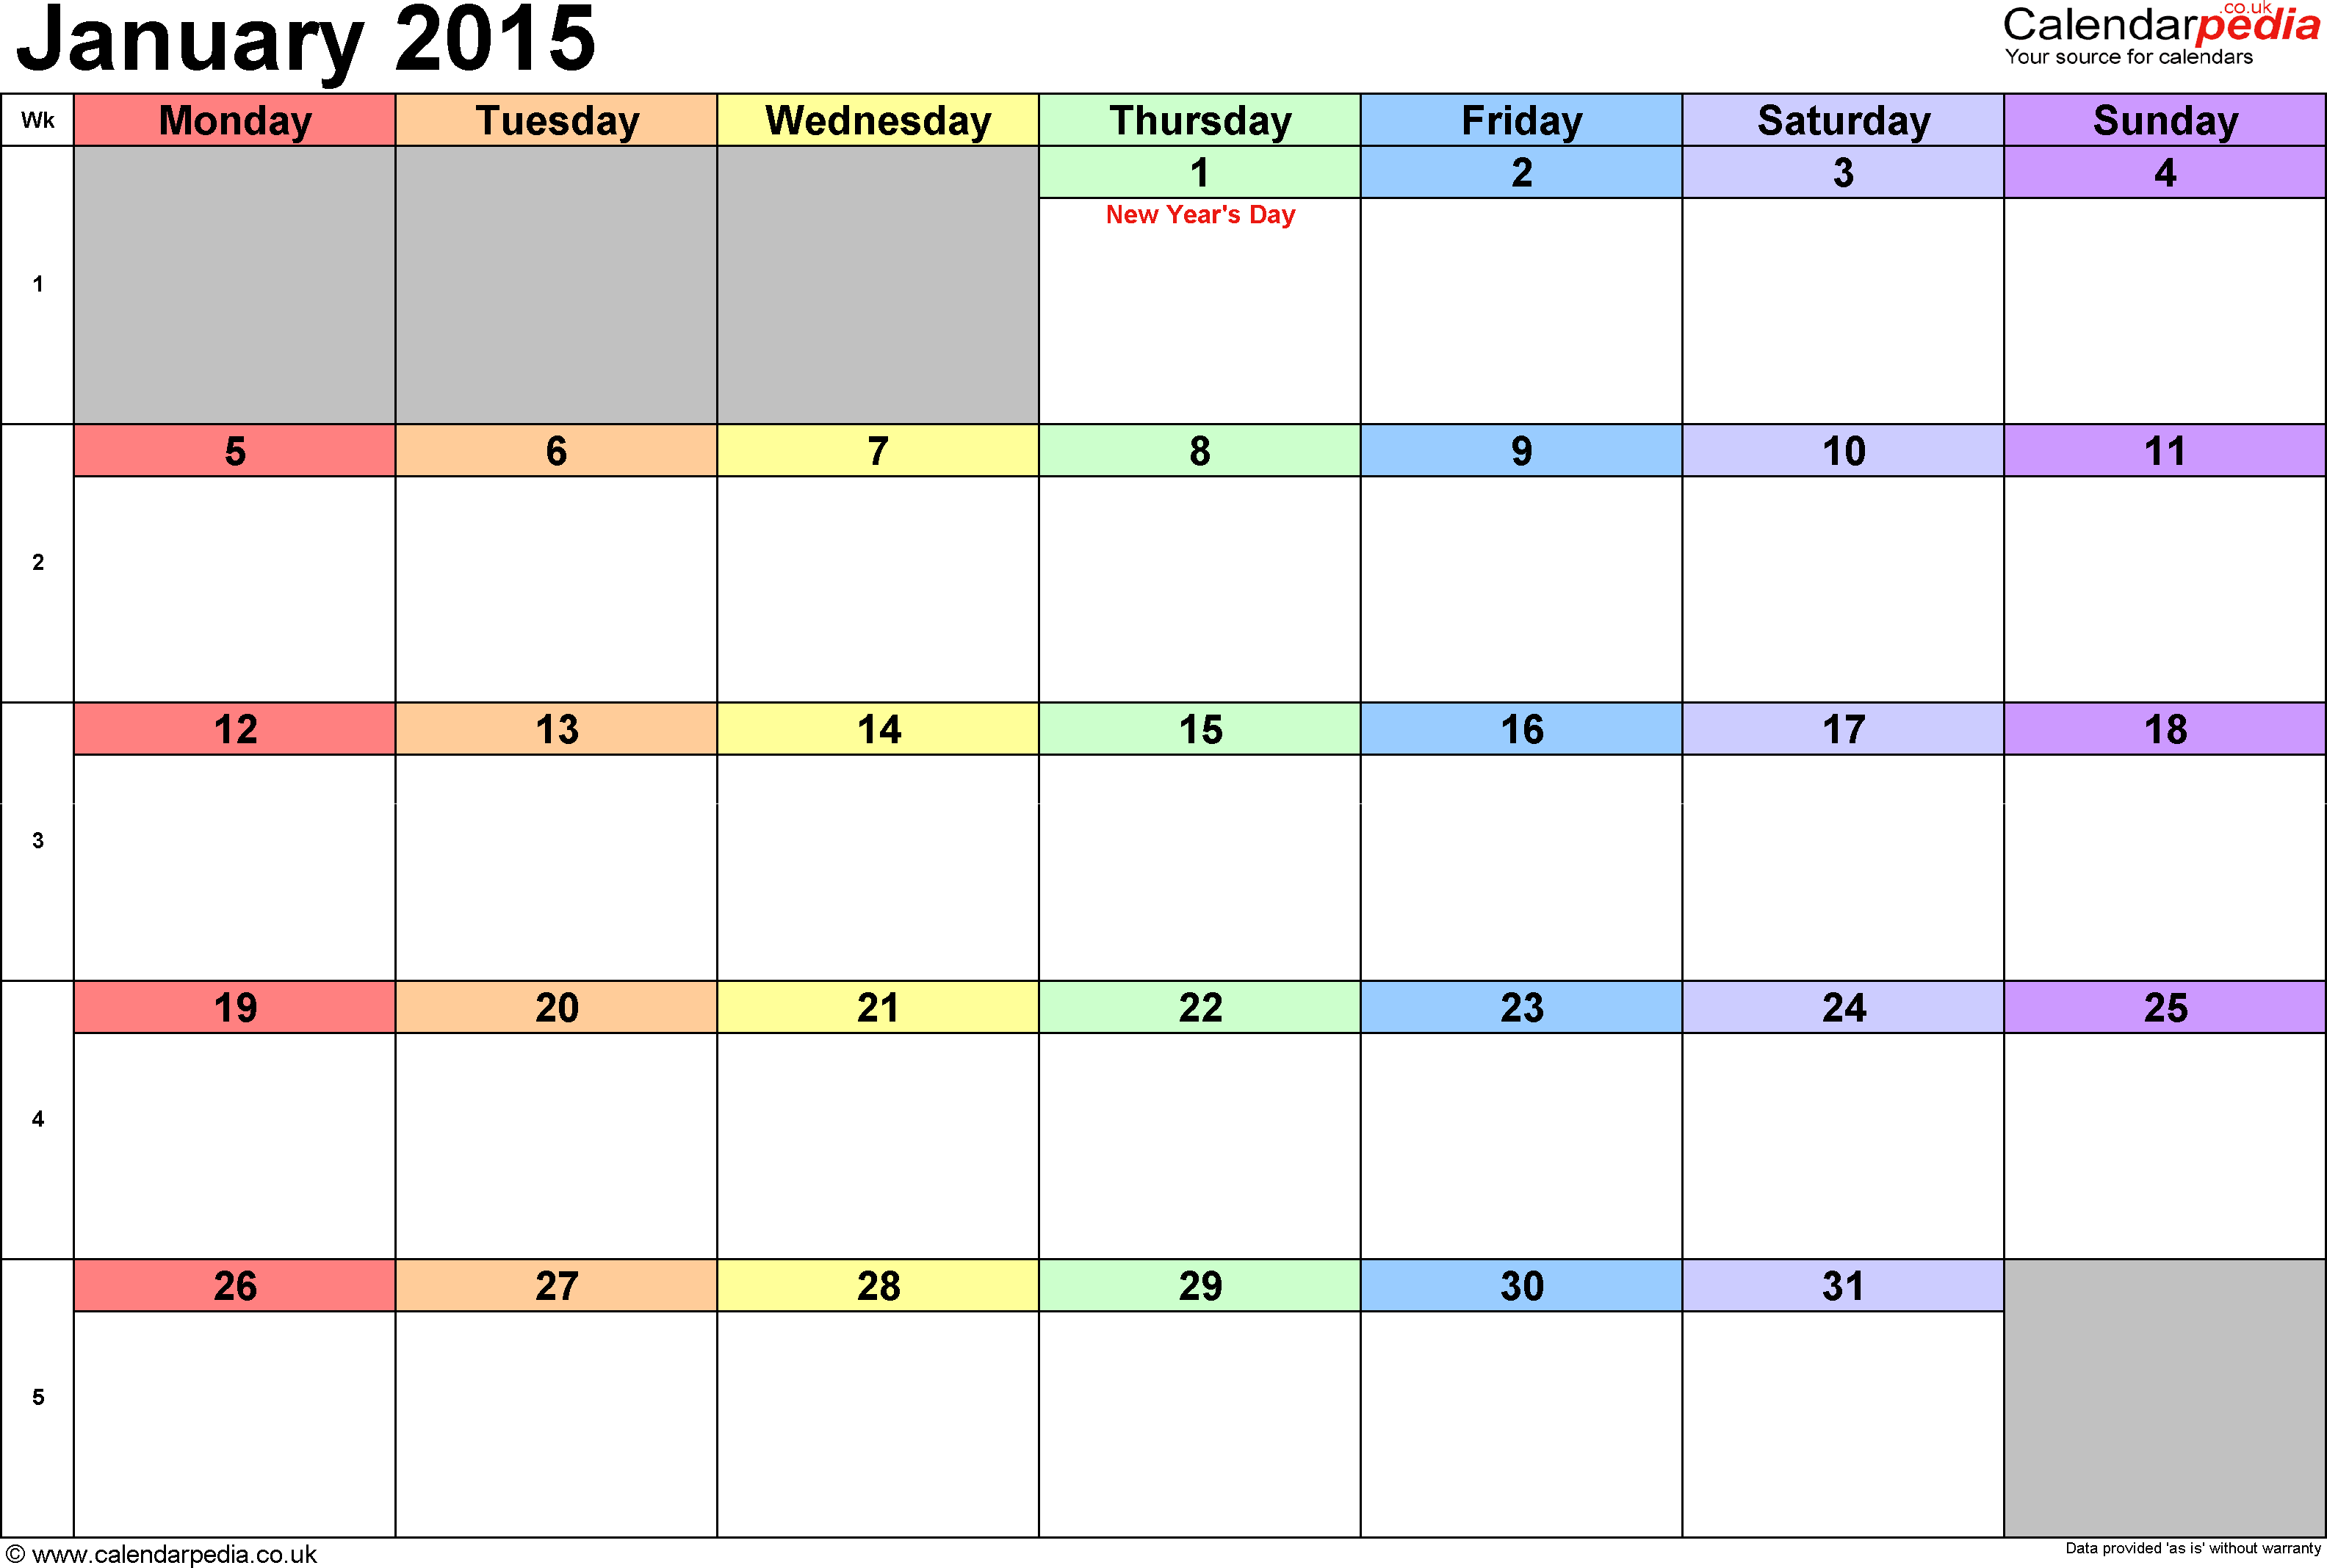 Calendar January 2015, landscape orientation, 1 page, with UK bank holidays and week numbers